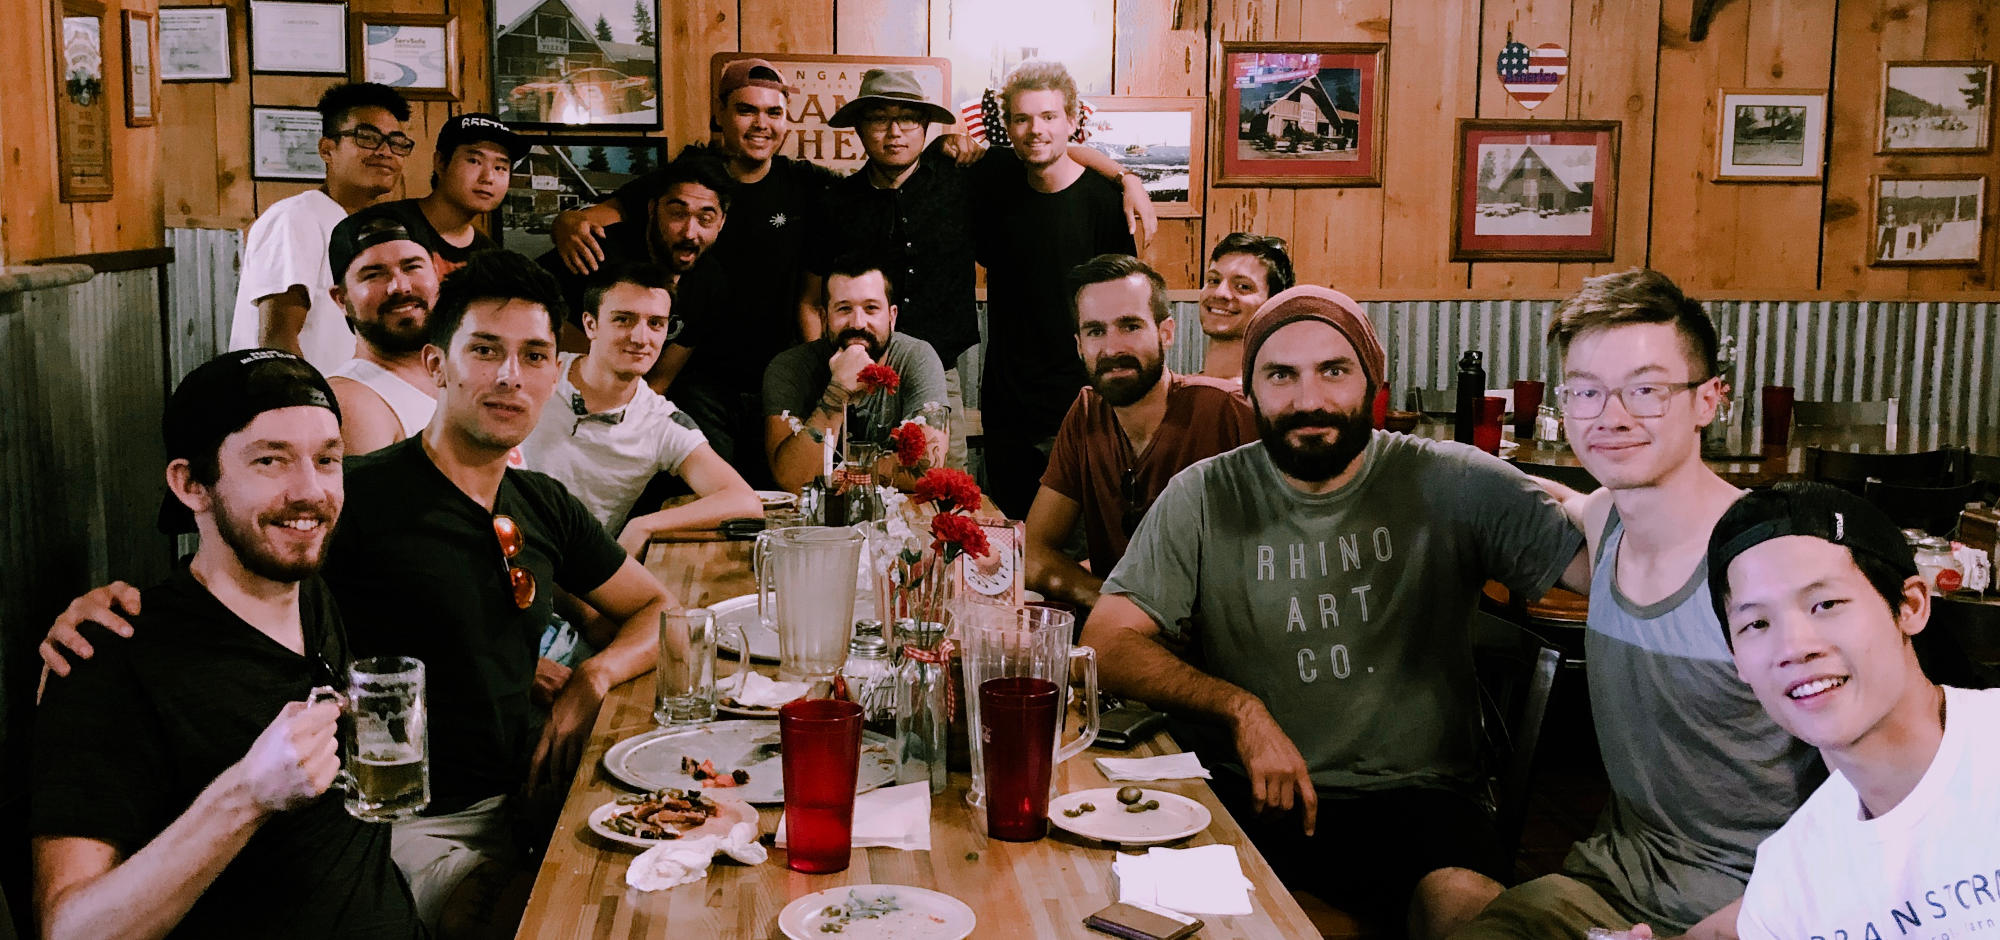 Photo of a bunch of guys sitting in a restaurant having some beer after a meal